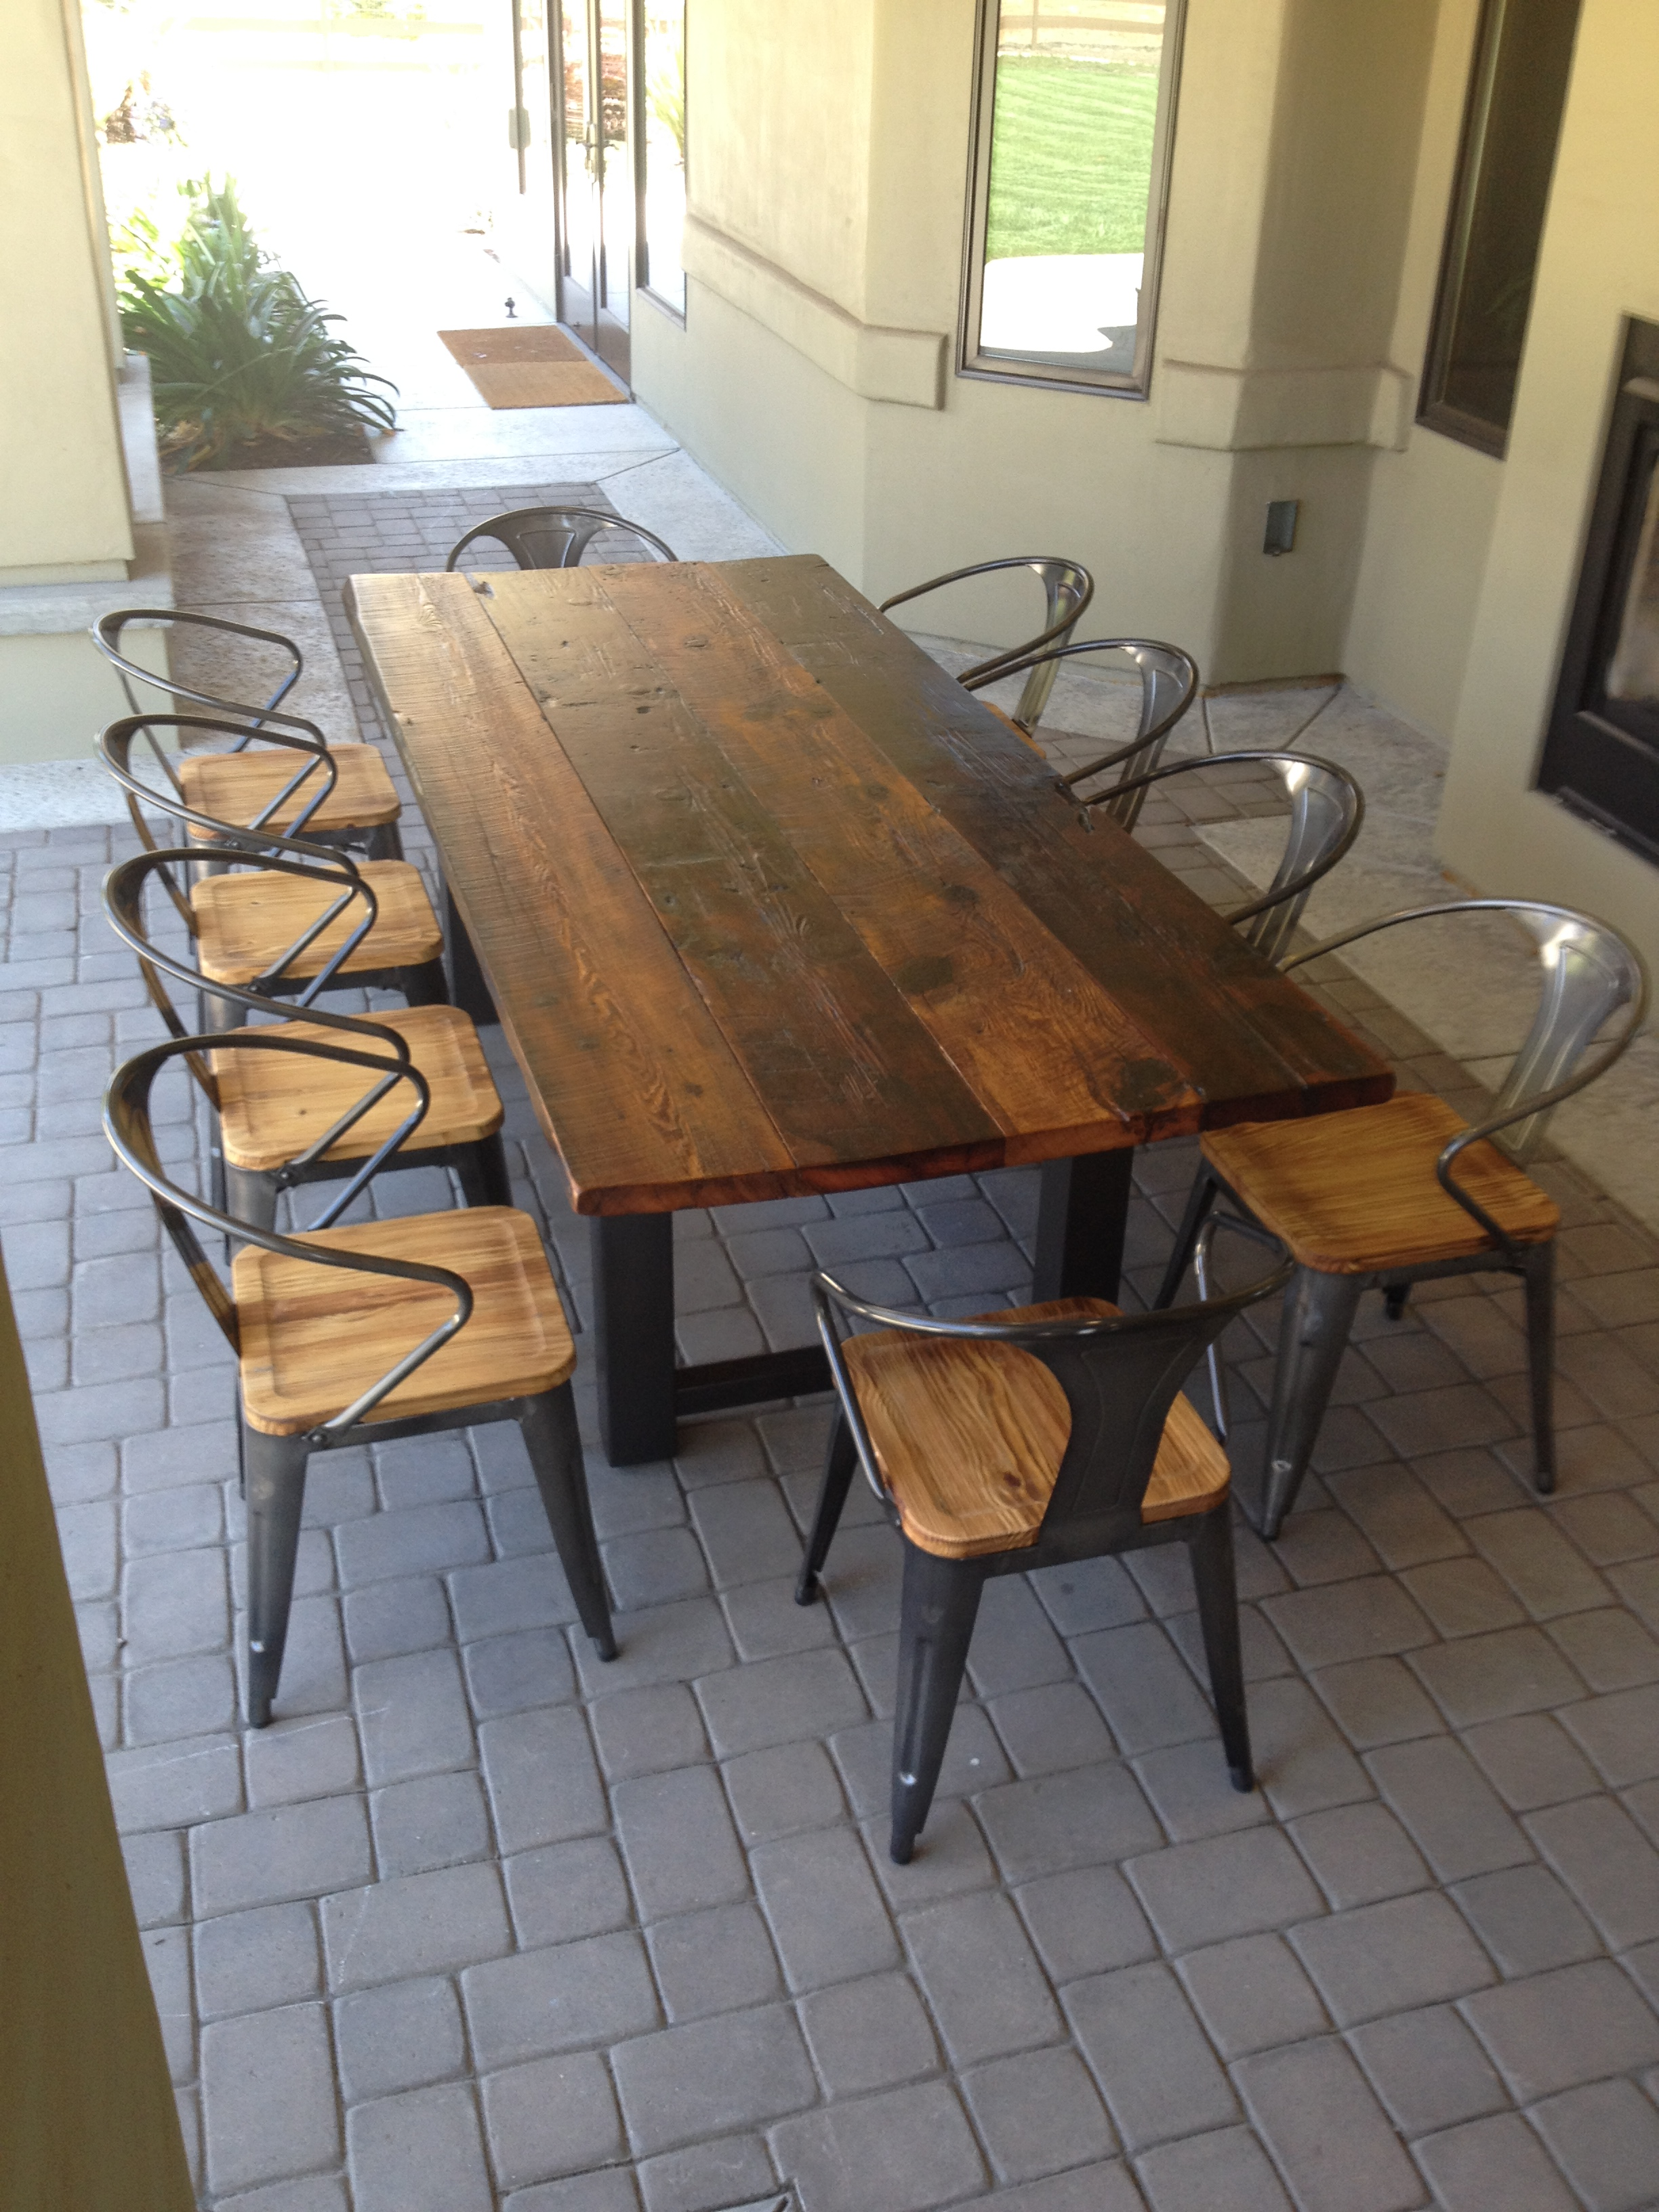 thecoastalcraftsman Reclaimed Wood : reclaimed wood and steel outdoor dining table 1 from thecoastalcraftsman.com size 2448 x 3264 jpeg 2199kB